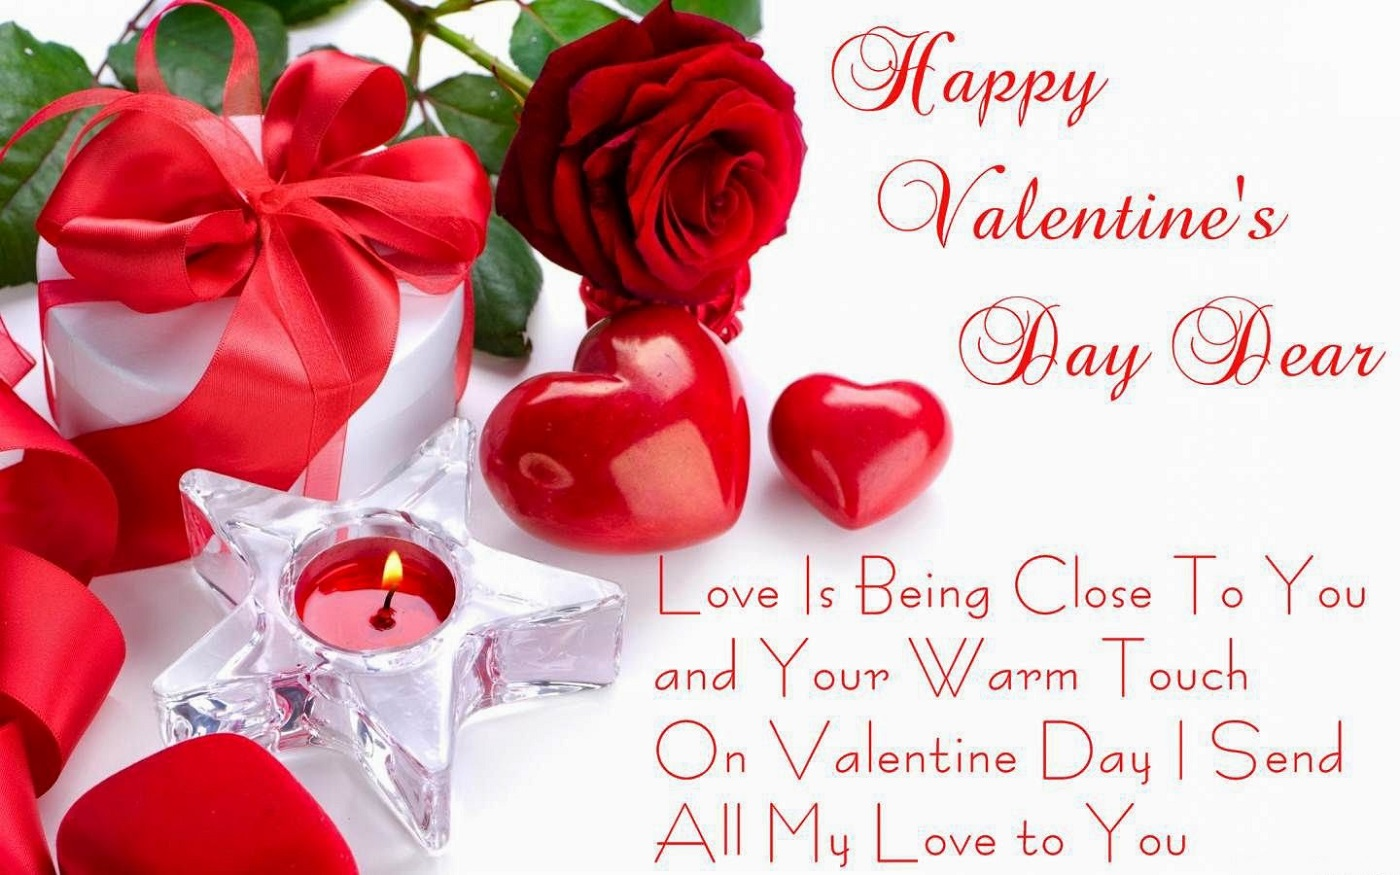 Happy Valentines Day Sms In Hindi 2017